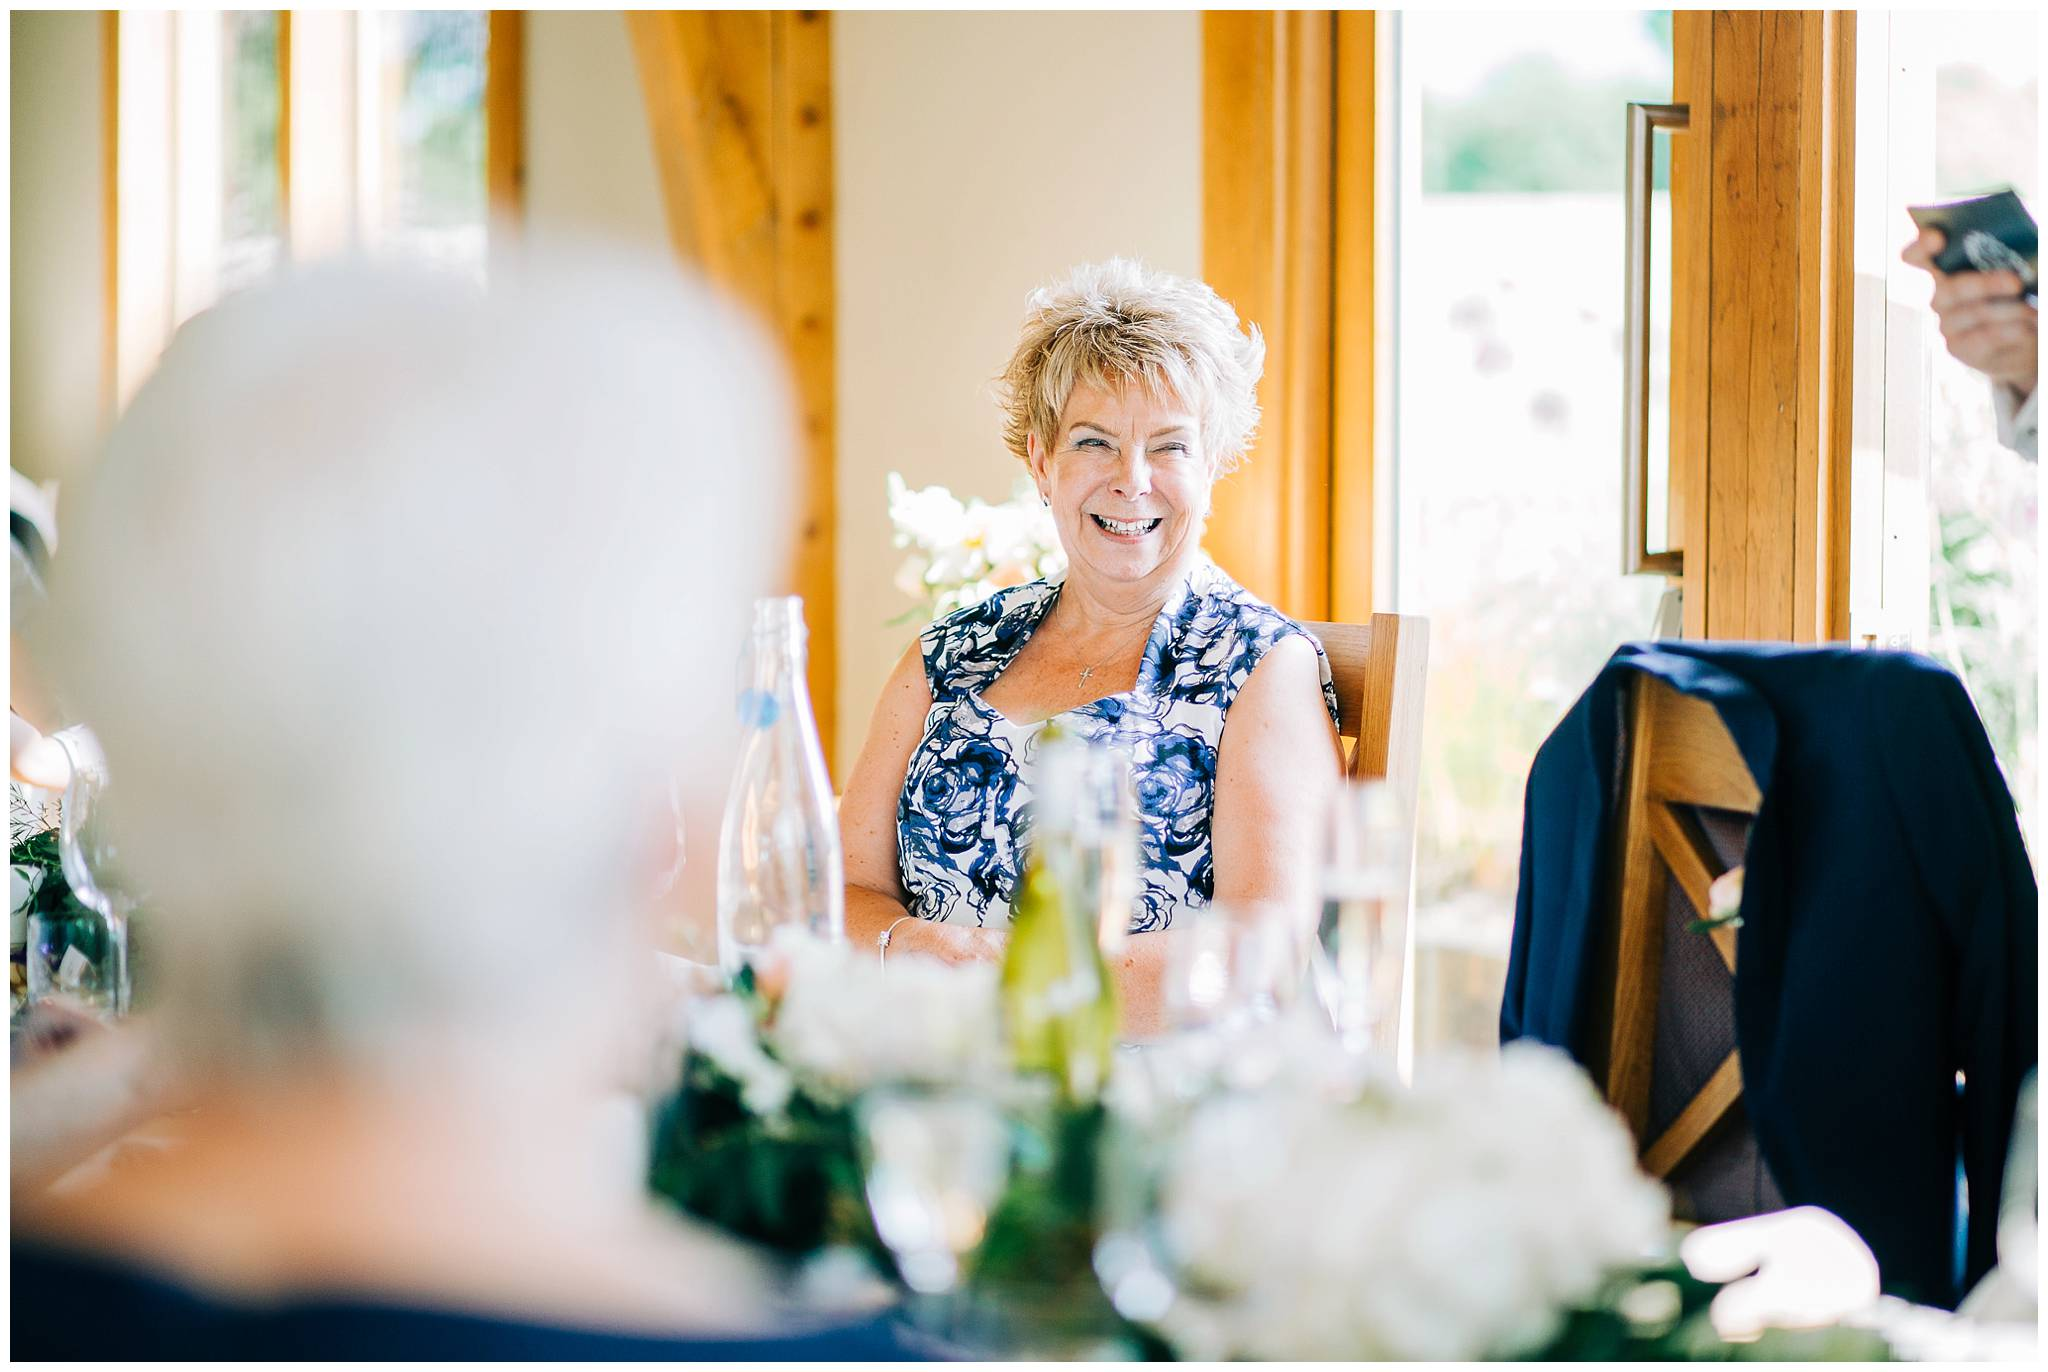 the mother of the groom is smiling as a reaction to the grooms speech